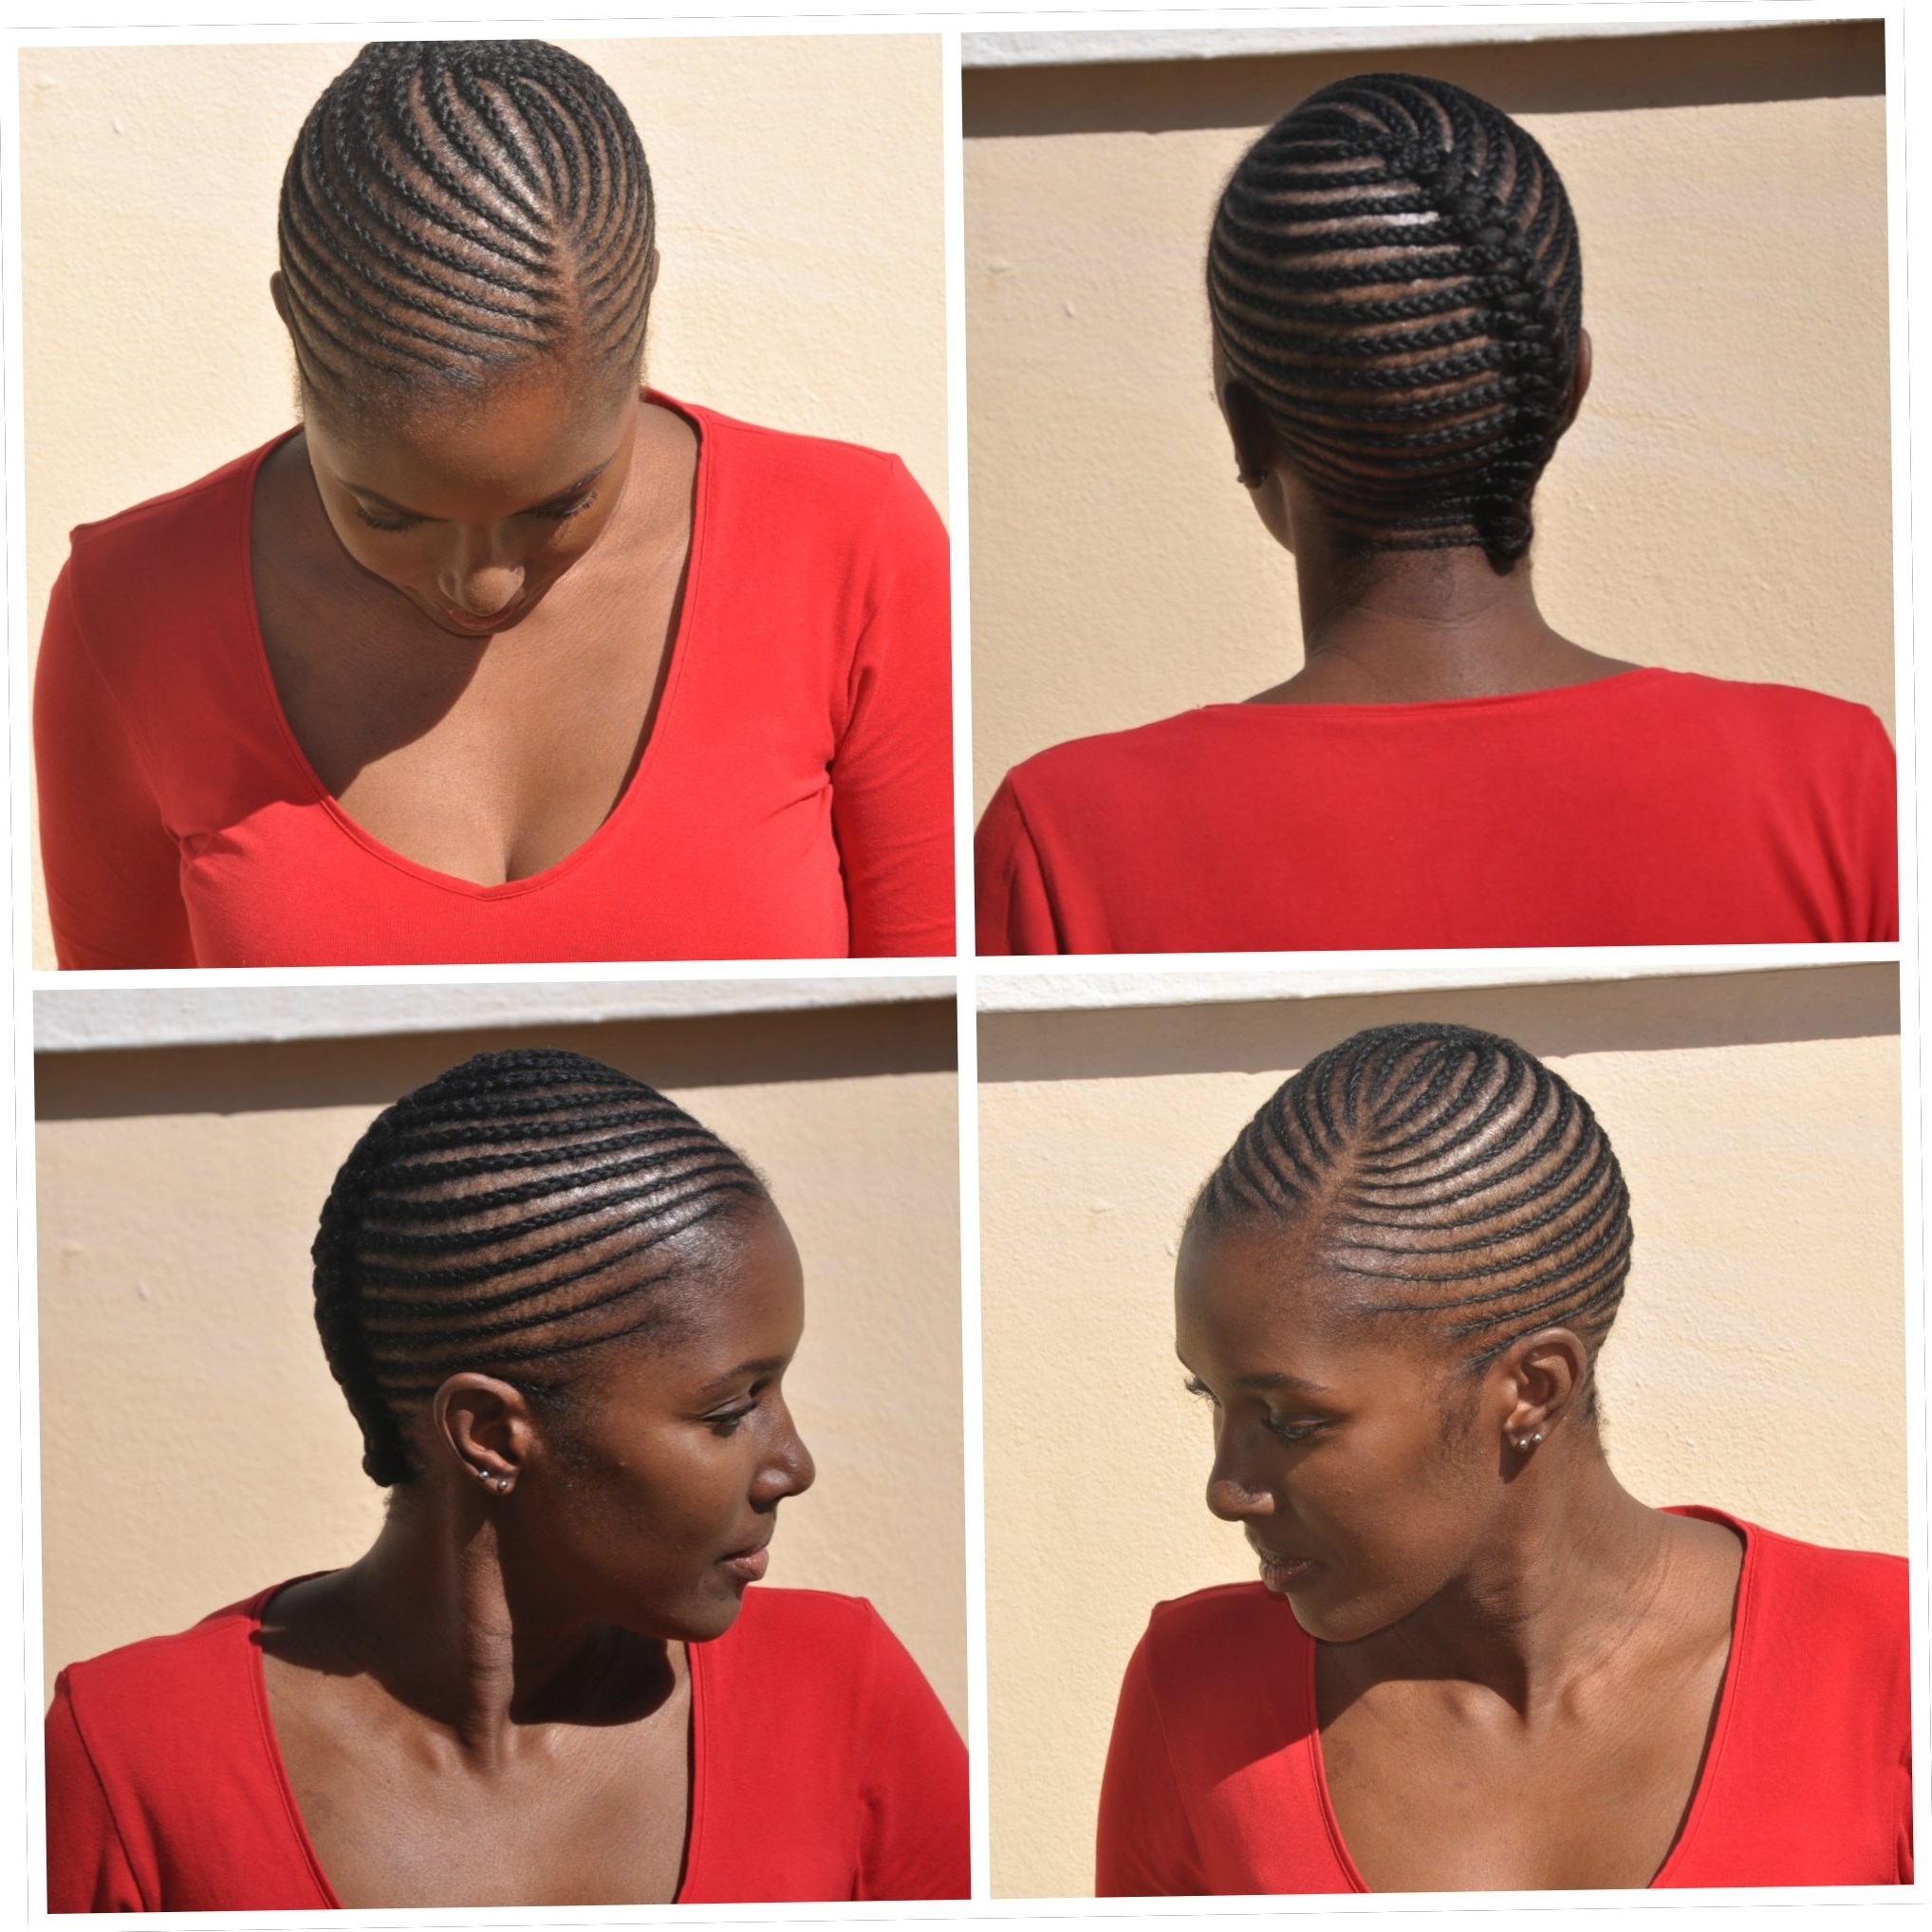 Current Cornrows Hairstyles For Thin Edges Throughout Simple Hairstyle For Small Cornrow Hairstyles My Former Edges Hair (View 8 of 15)